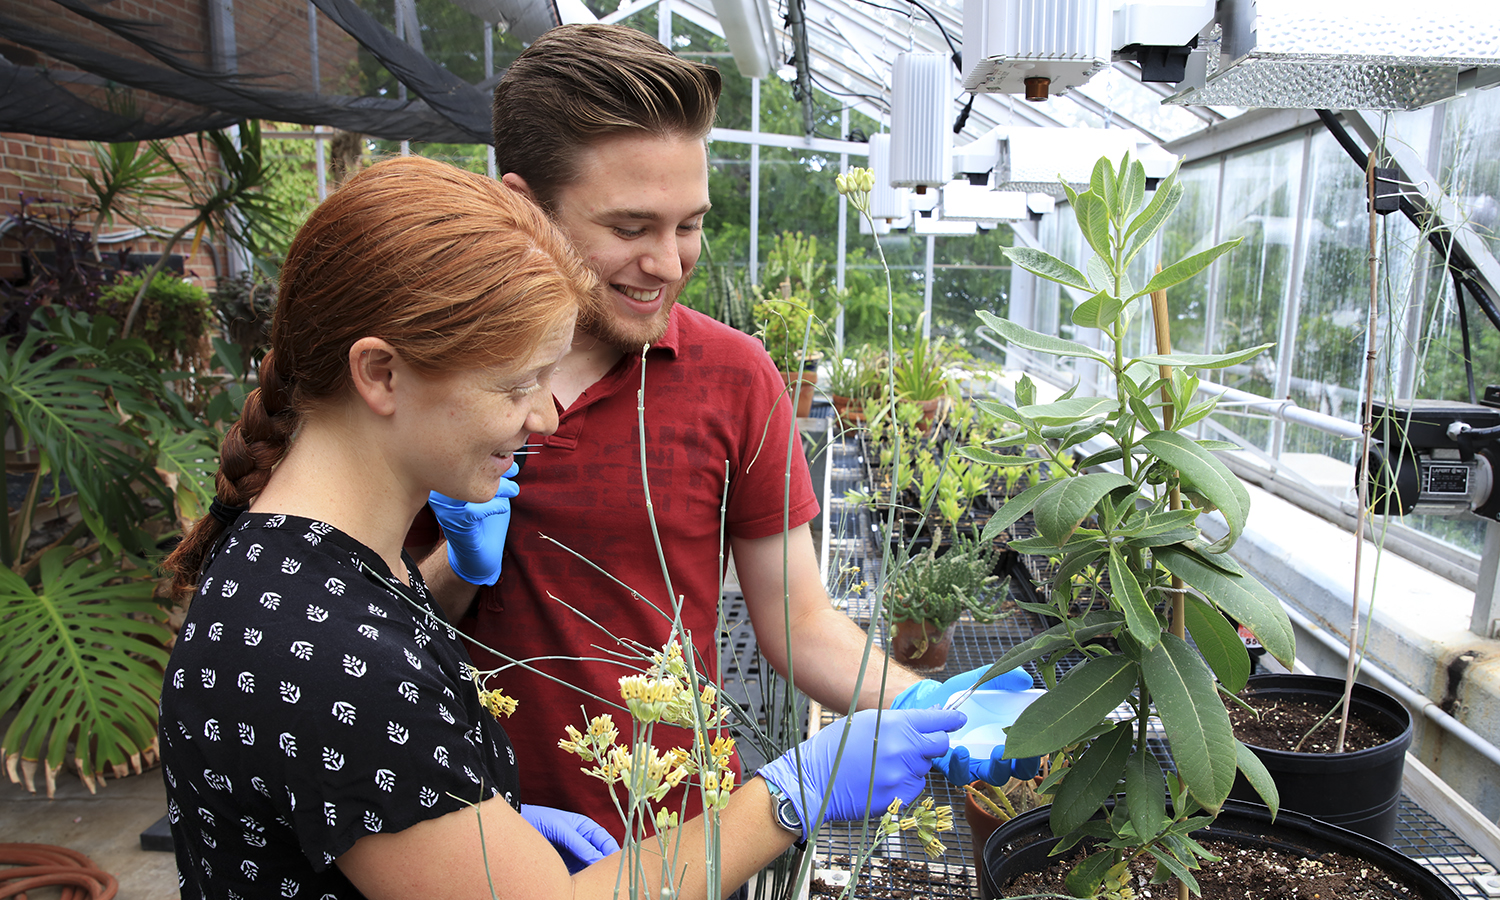 Carl Wagner '19 and Therese Mandracchia '19 examine a common milkweed plant in a greenhouse on top of Eaton Hall. Wagner and Mandracchia are working on understanding the evolutionary relationships among North American milkweeds using DNA sequence data.